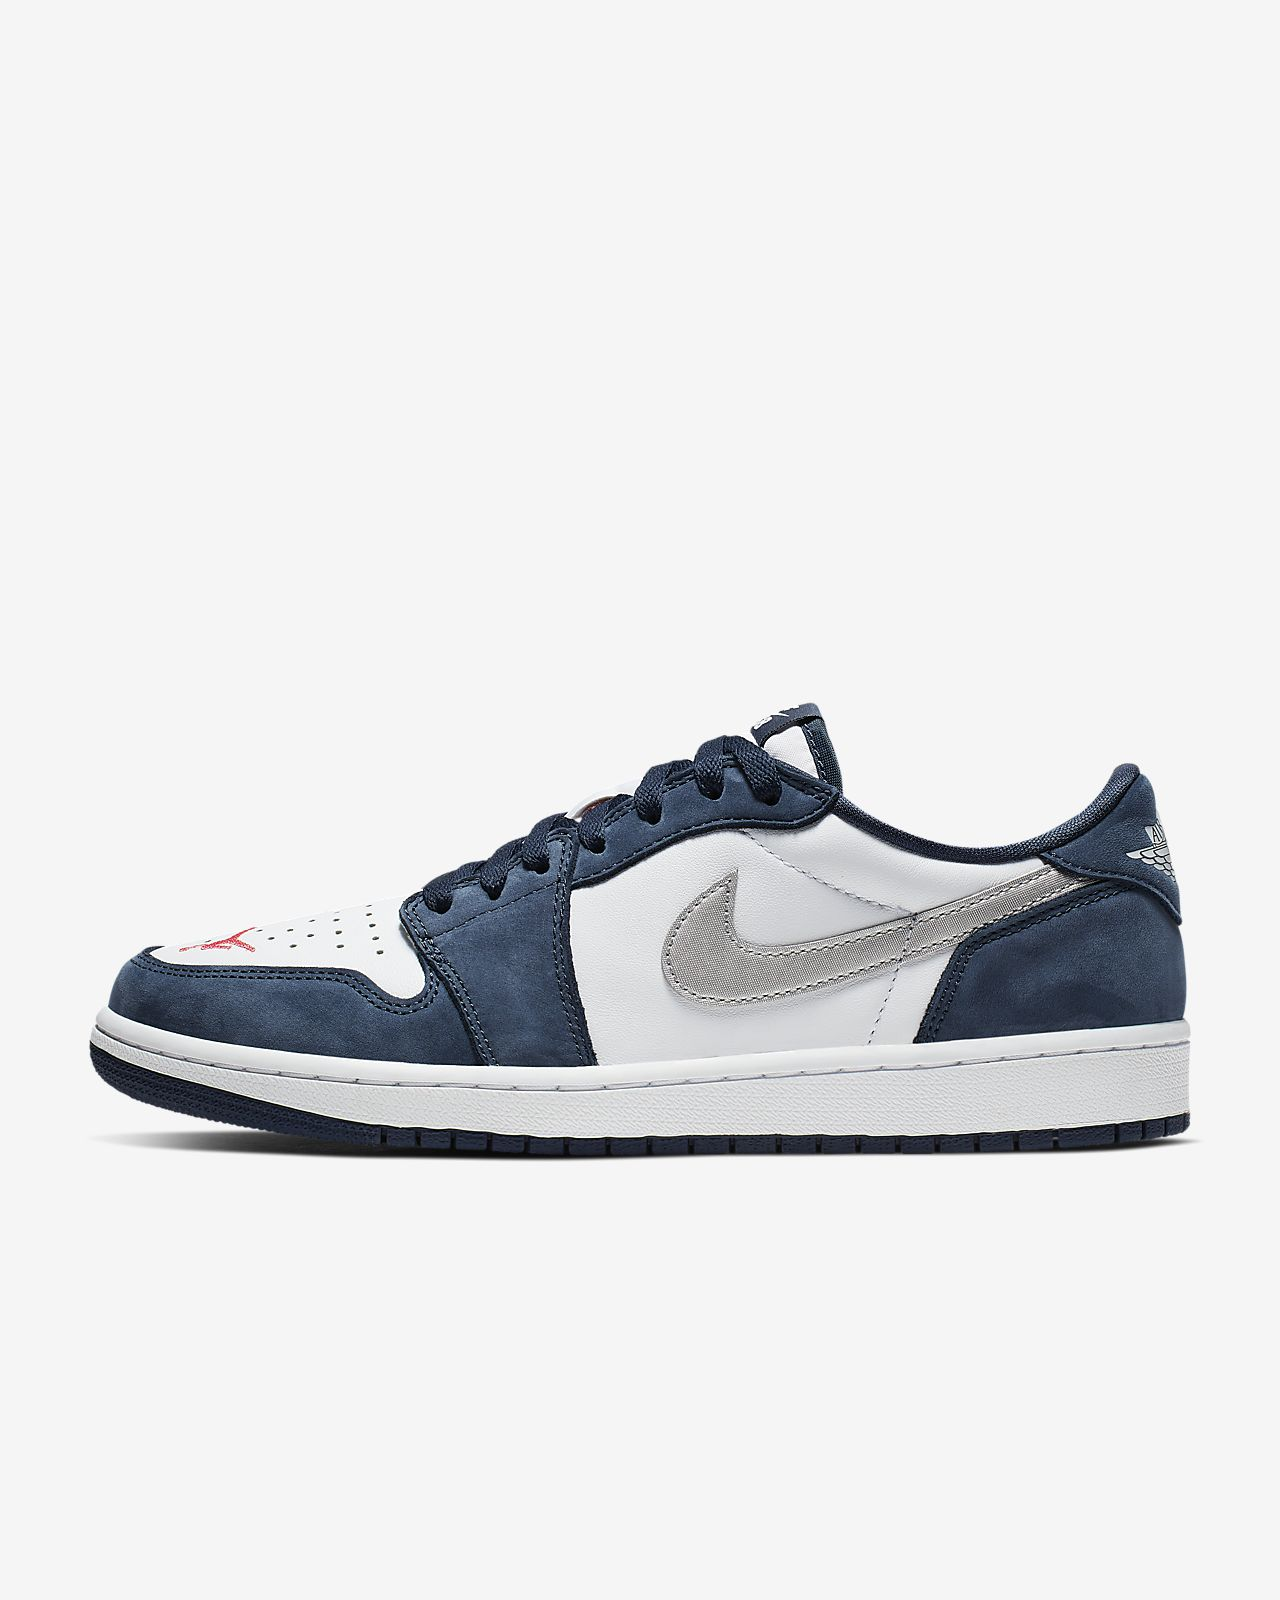 Nike SB Air Jordan 1 Low Skate Shoe